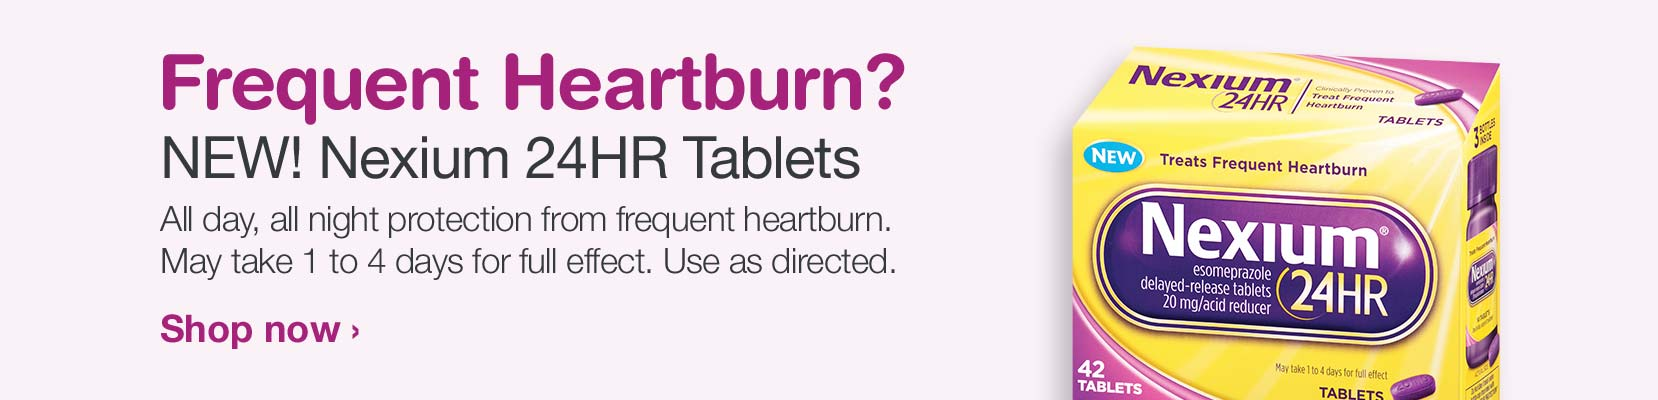 Frequent Heartburn? NEW! Nexium 24HR Tablets. All day, all night protection from frequent heartburn. May take 1 to 4 days for full effect. Use as directed. Shop Now.